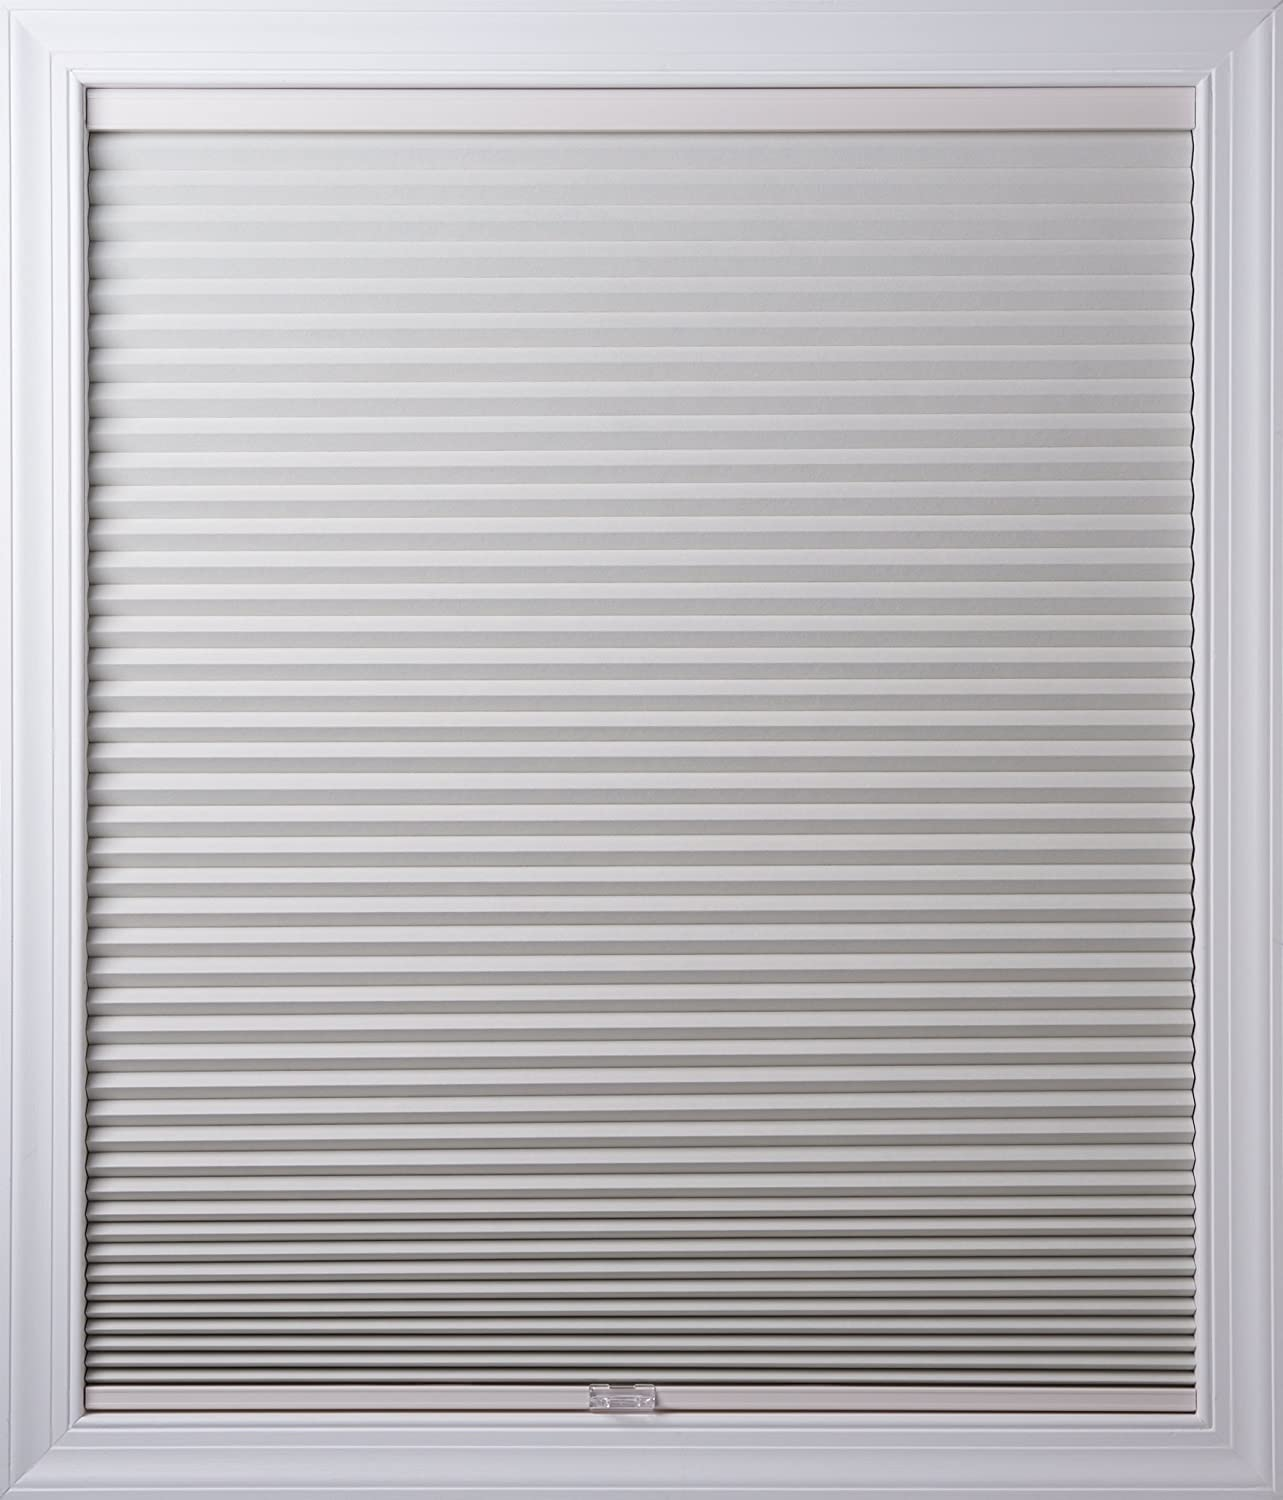 New Age Blinds Room Darkening Inside Frame Mount Cordless Cellular Shade 19-3//8 x 48-Inch White Dove 4819.375NAWFIRDWHD